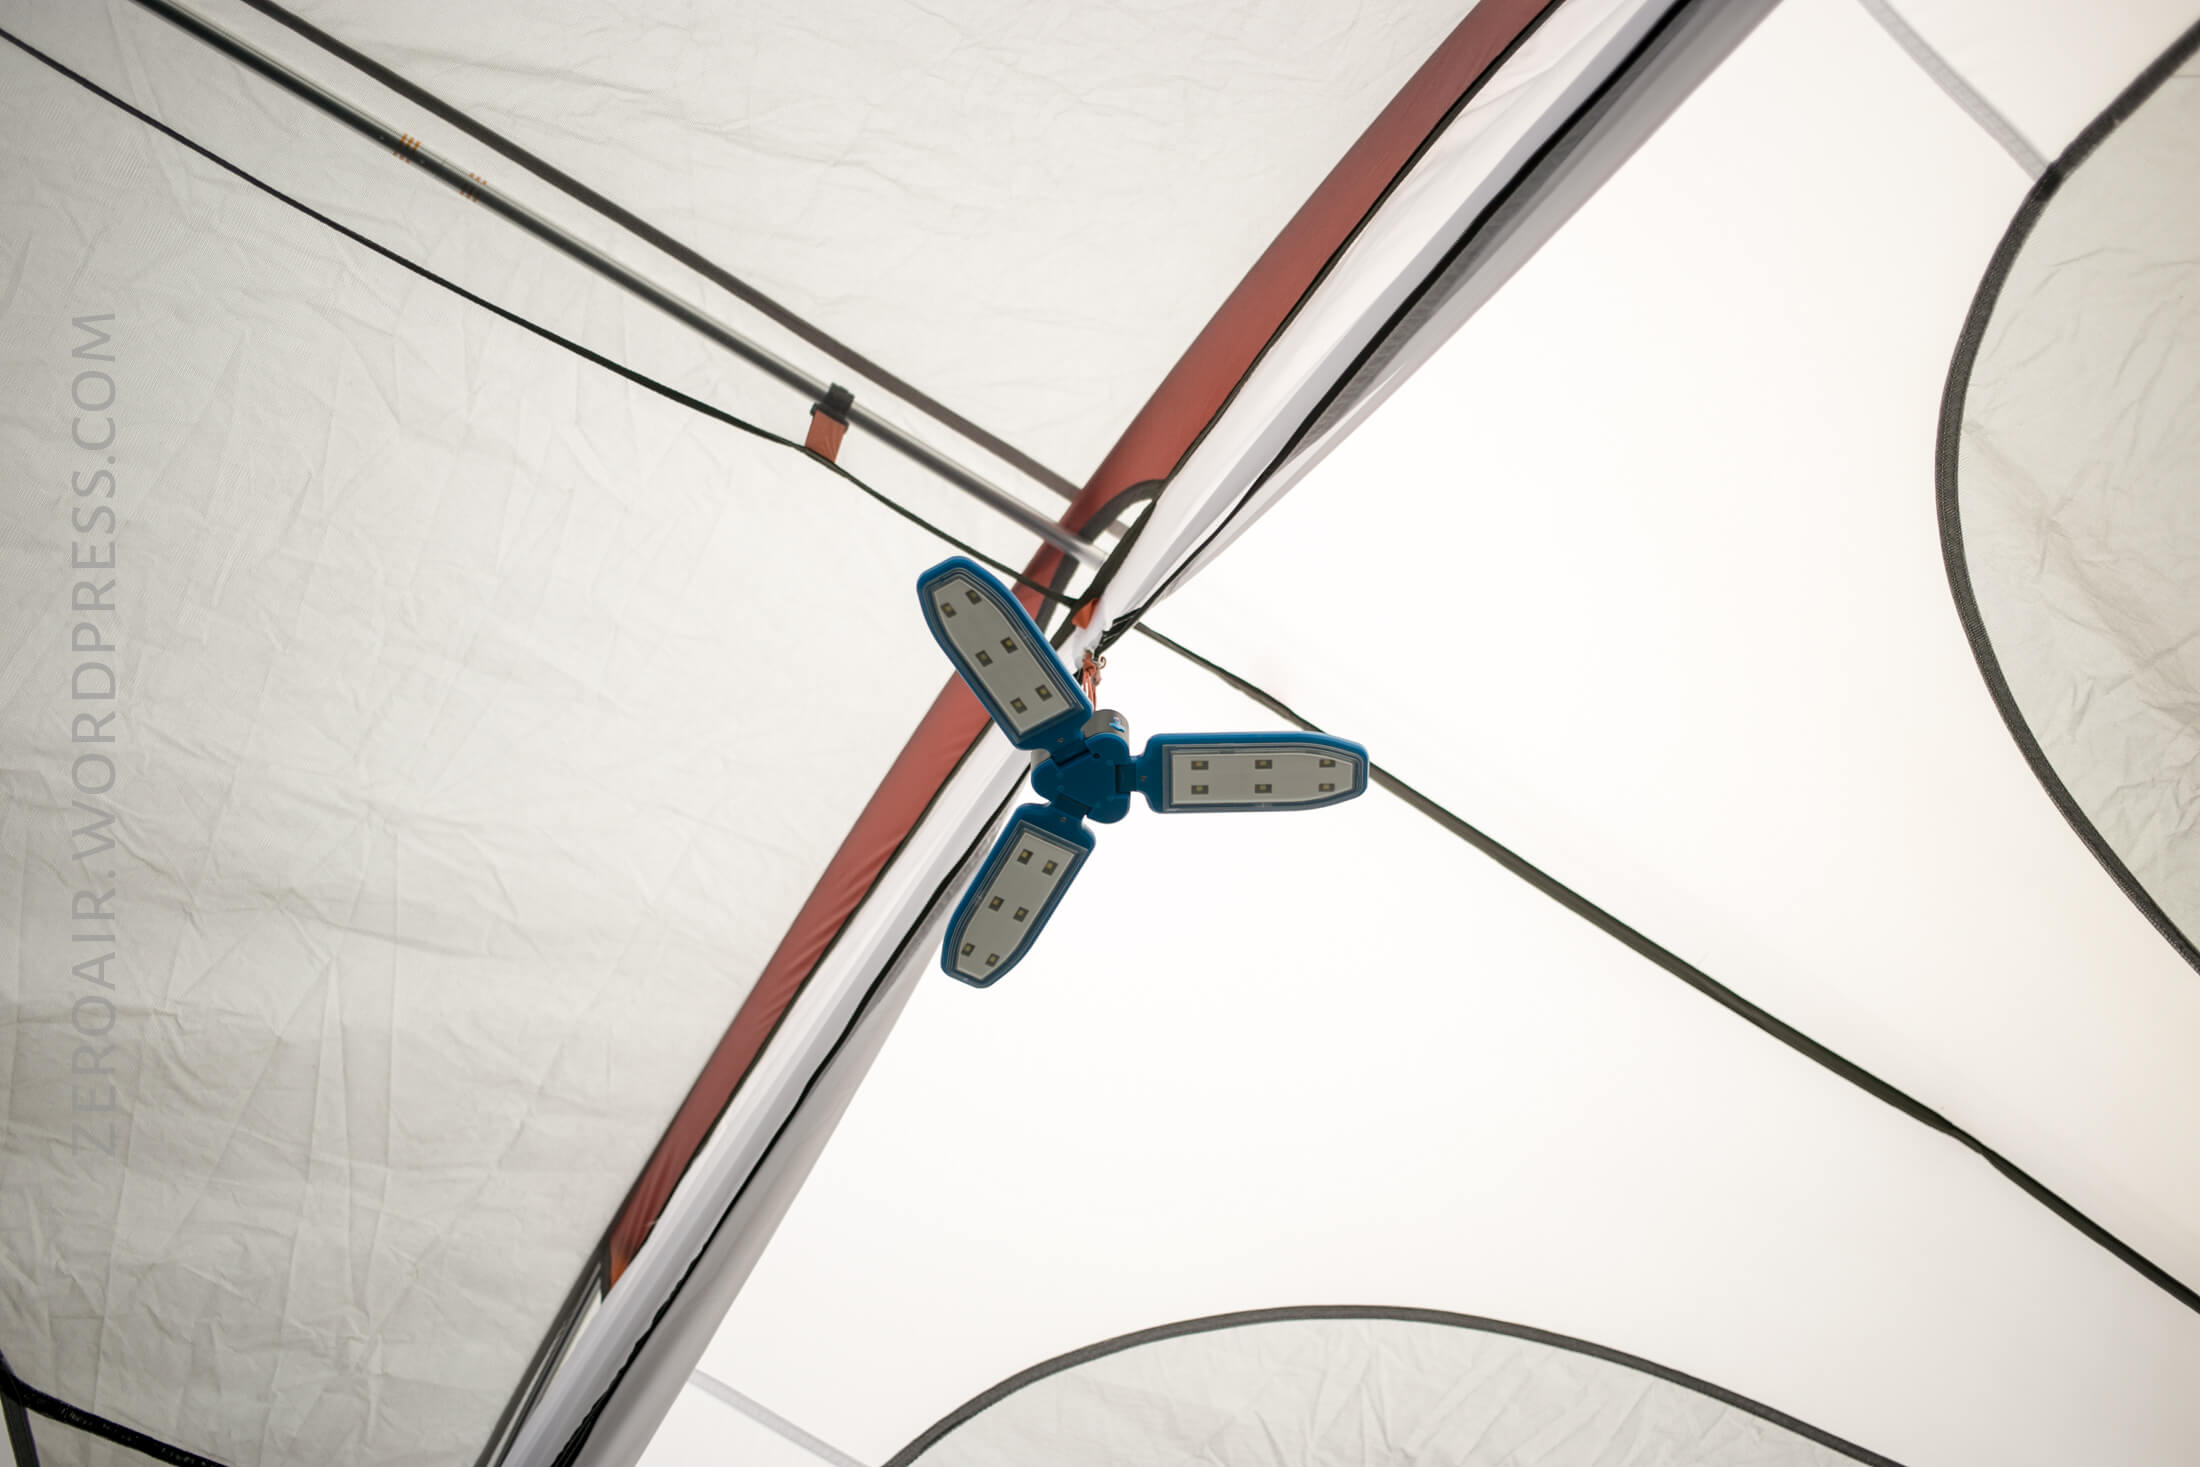 33_zeroair_reviews_zanflare_sb-6039_tent_light.jpg